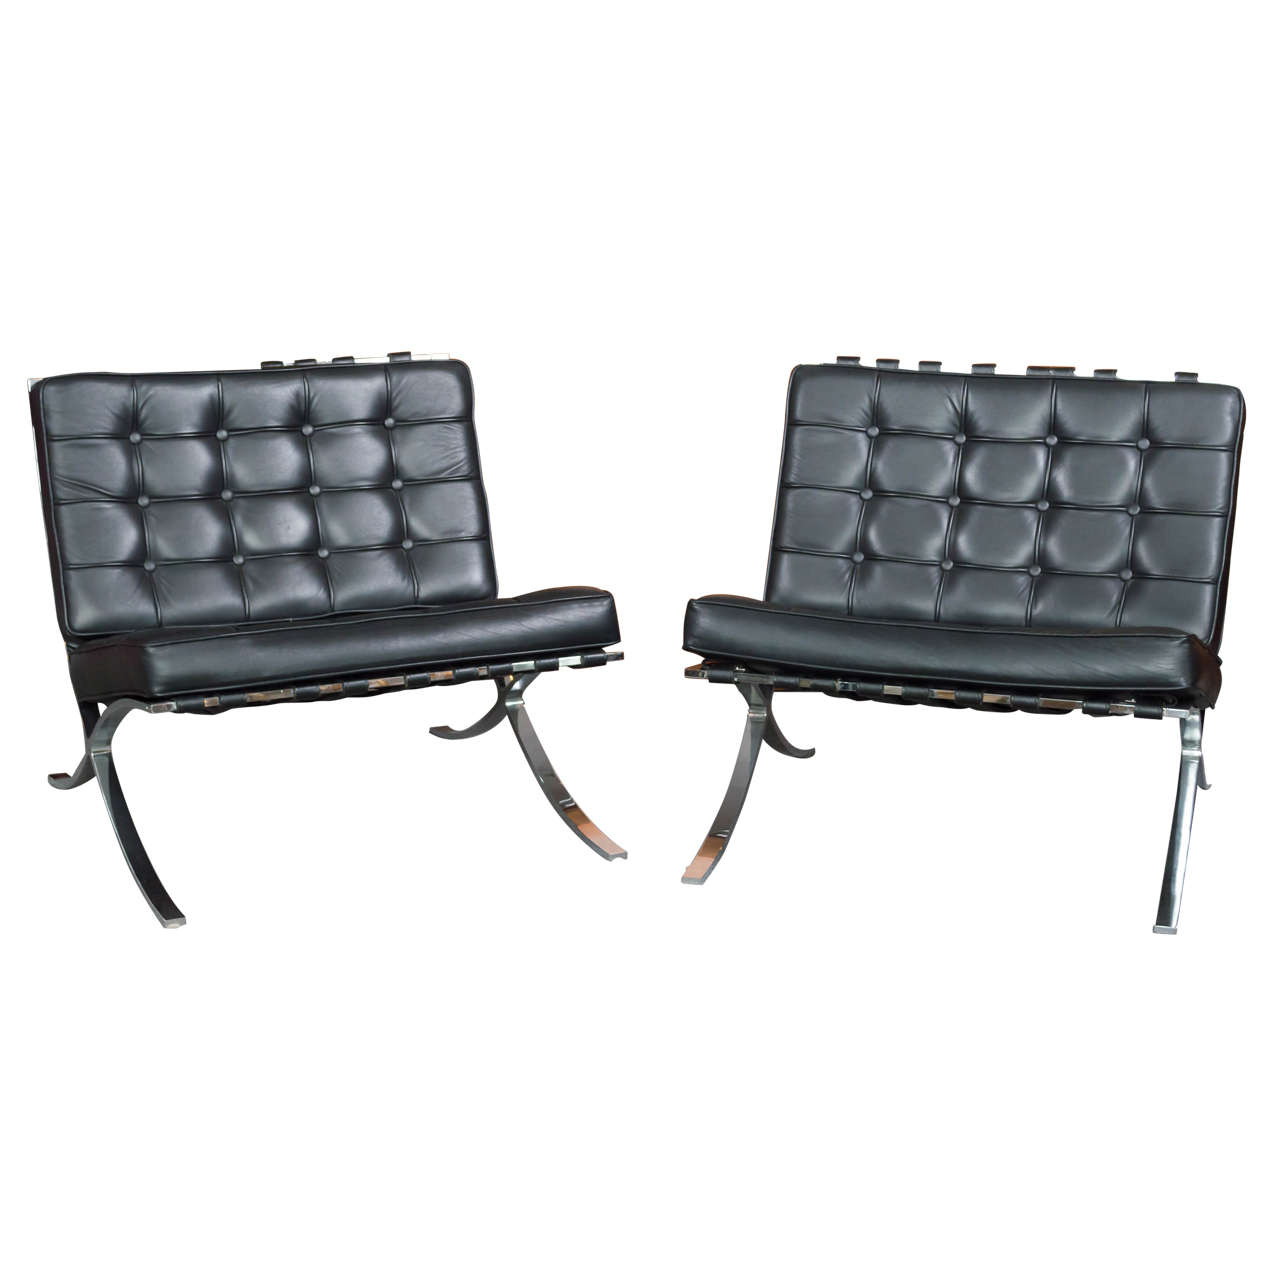 Mies van der rohe barcelona style chairs saturday sale at 1stdibs